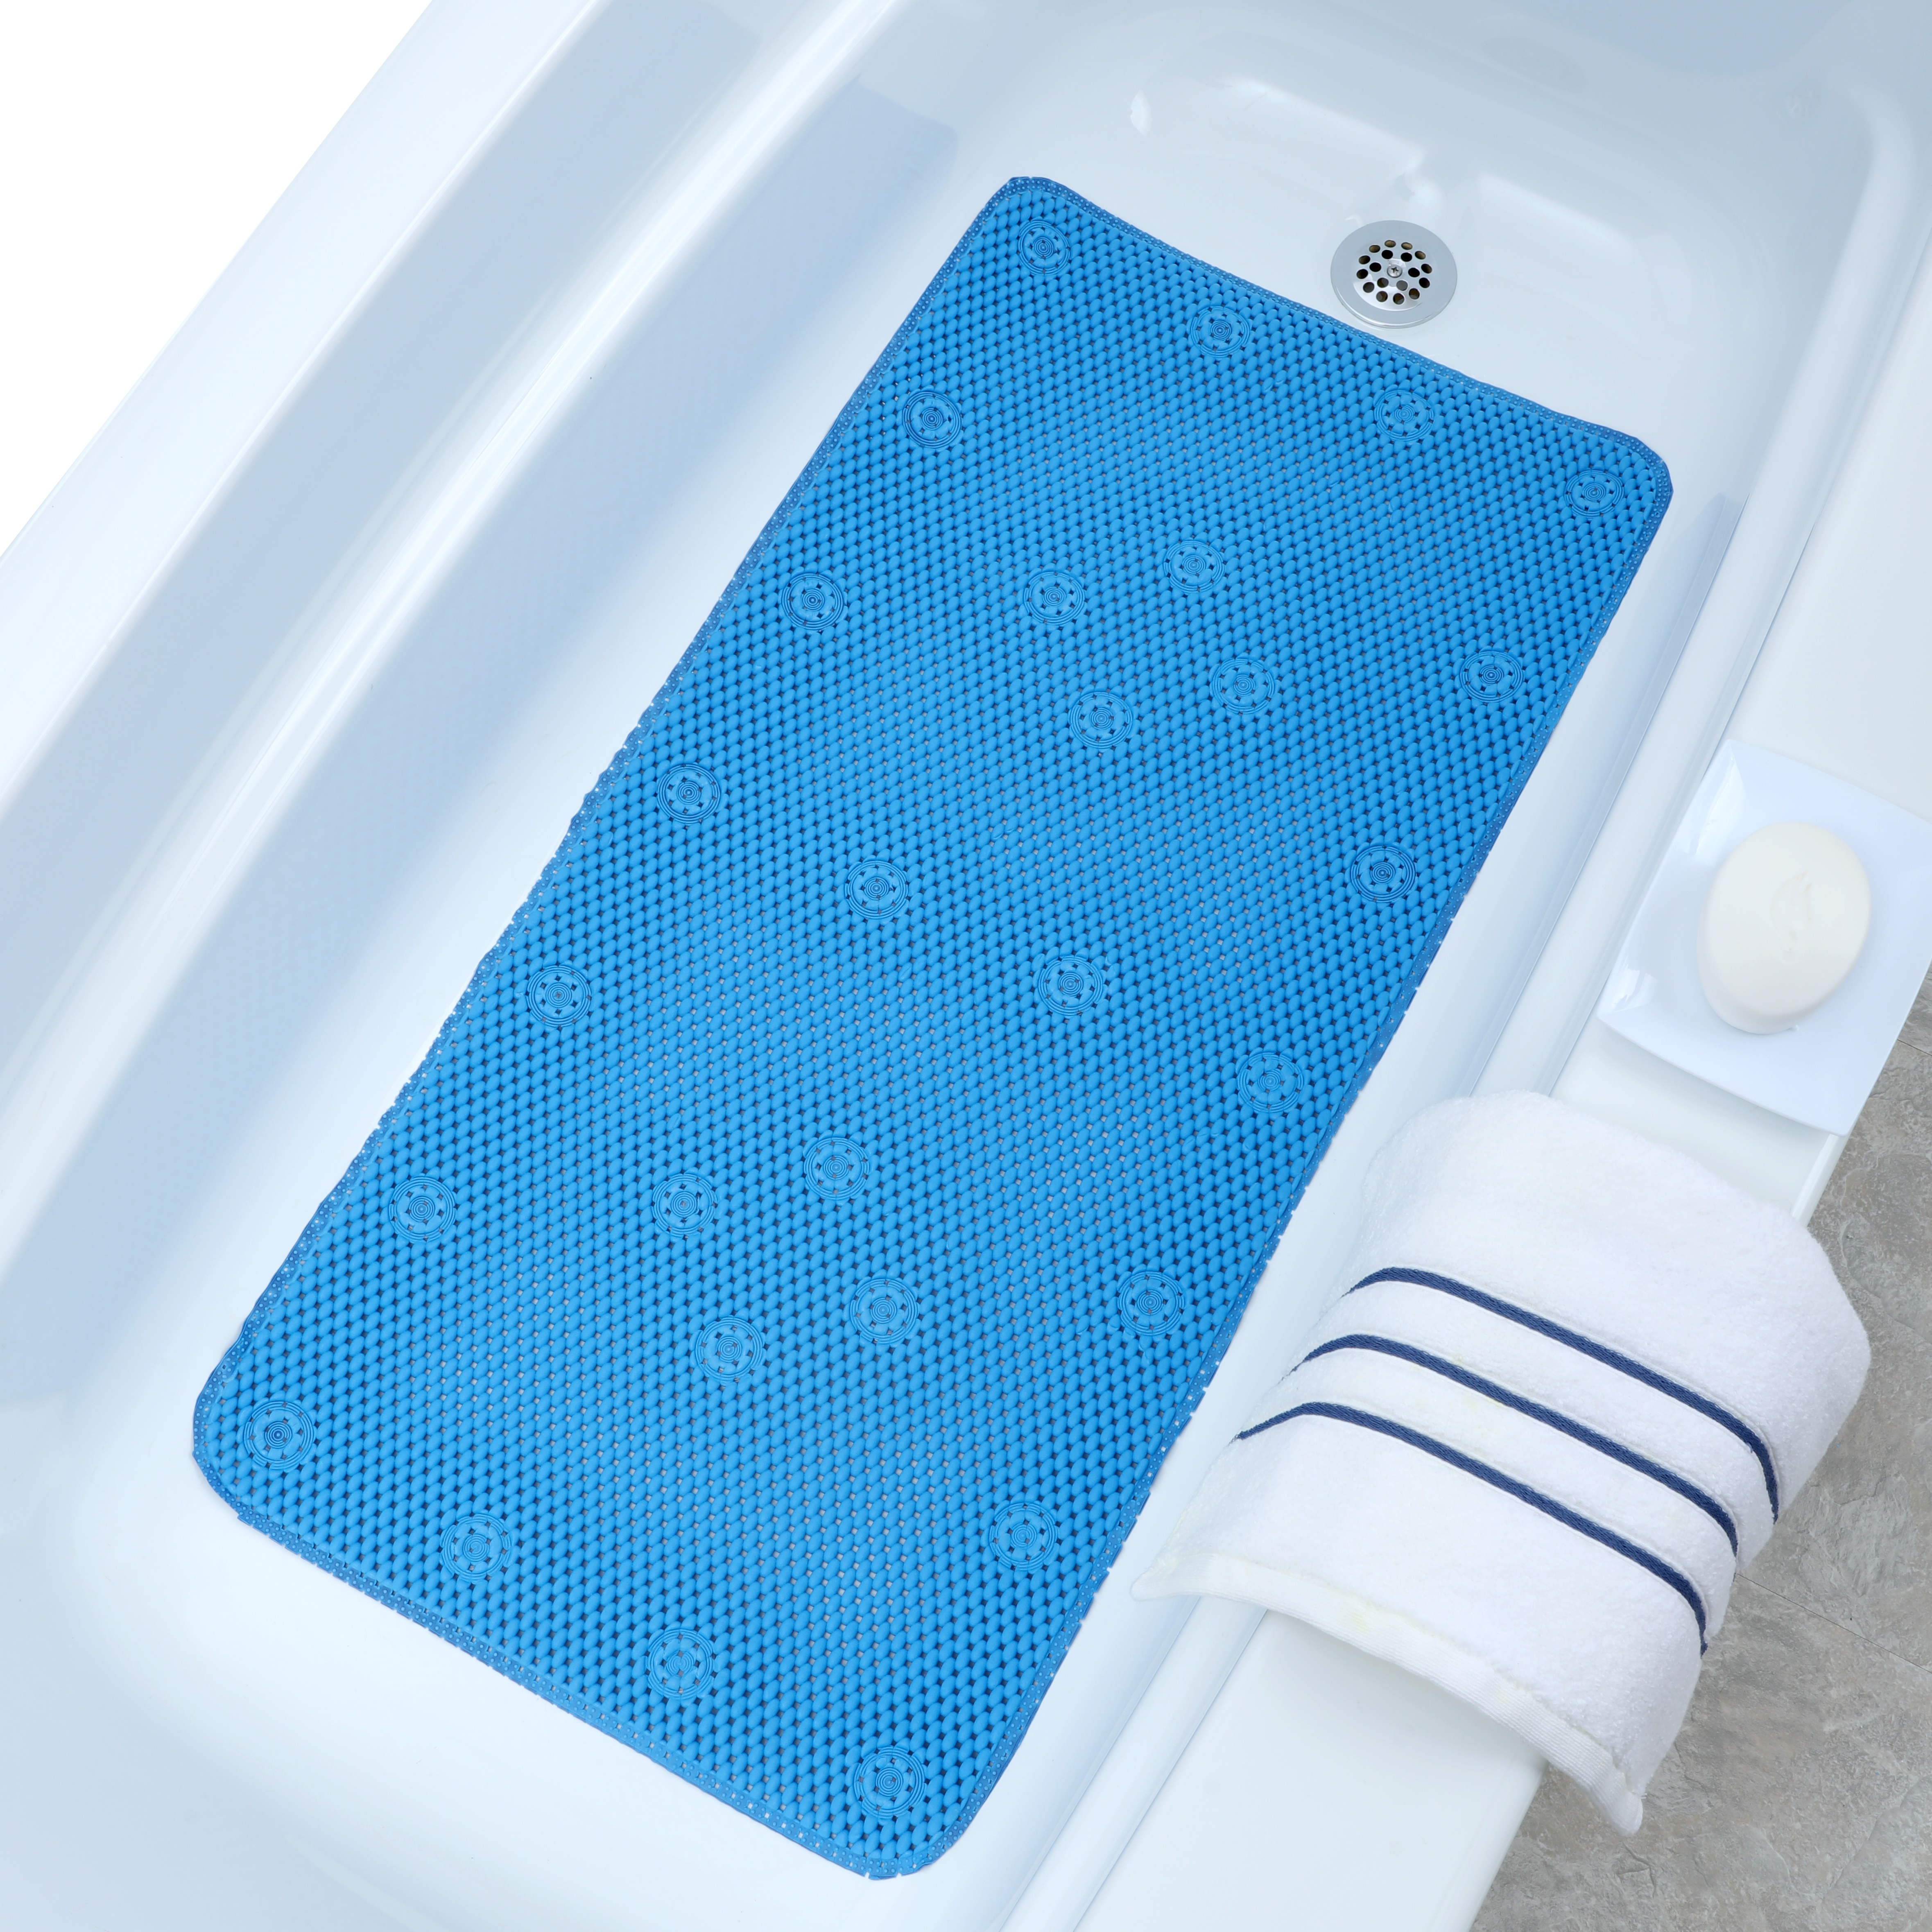 SlipX Solutions Comfort Foam Bath Mat